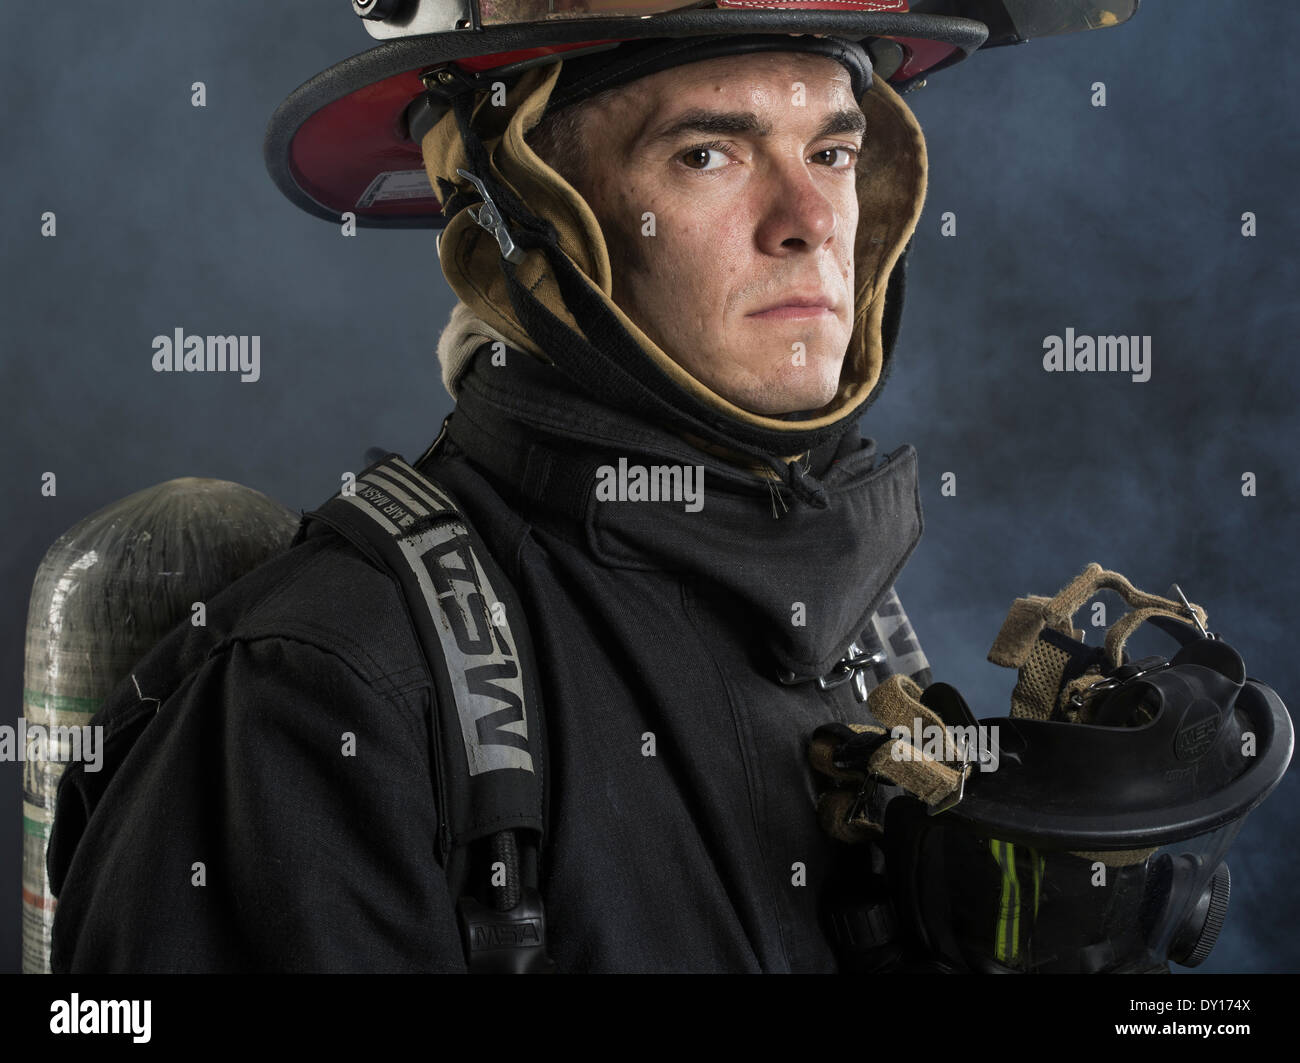 Male firefighter in structural firefighting uniform with breathing apparatus and axe - Stock Image